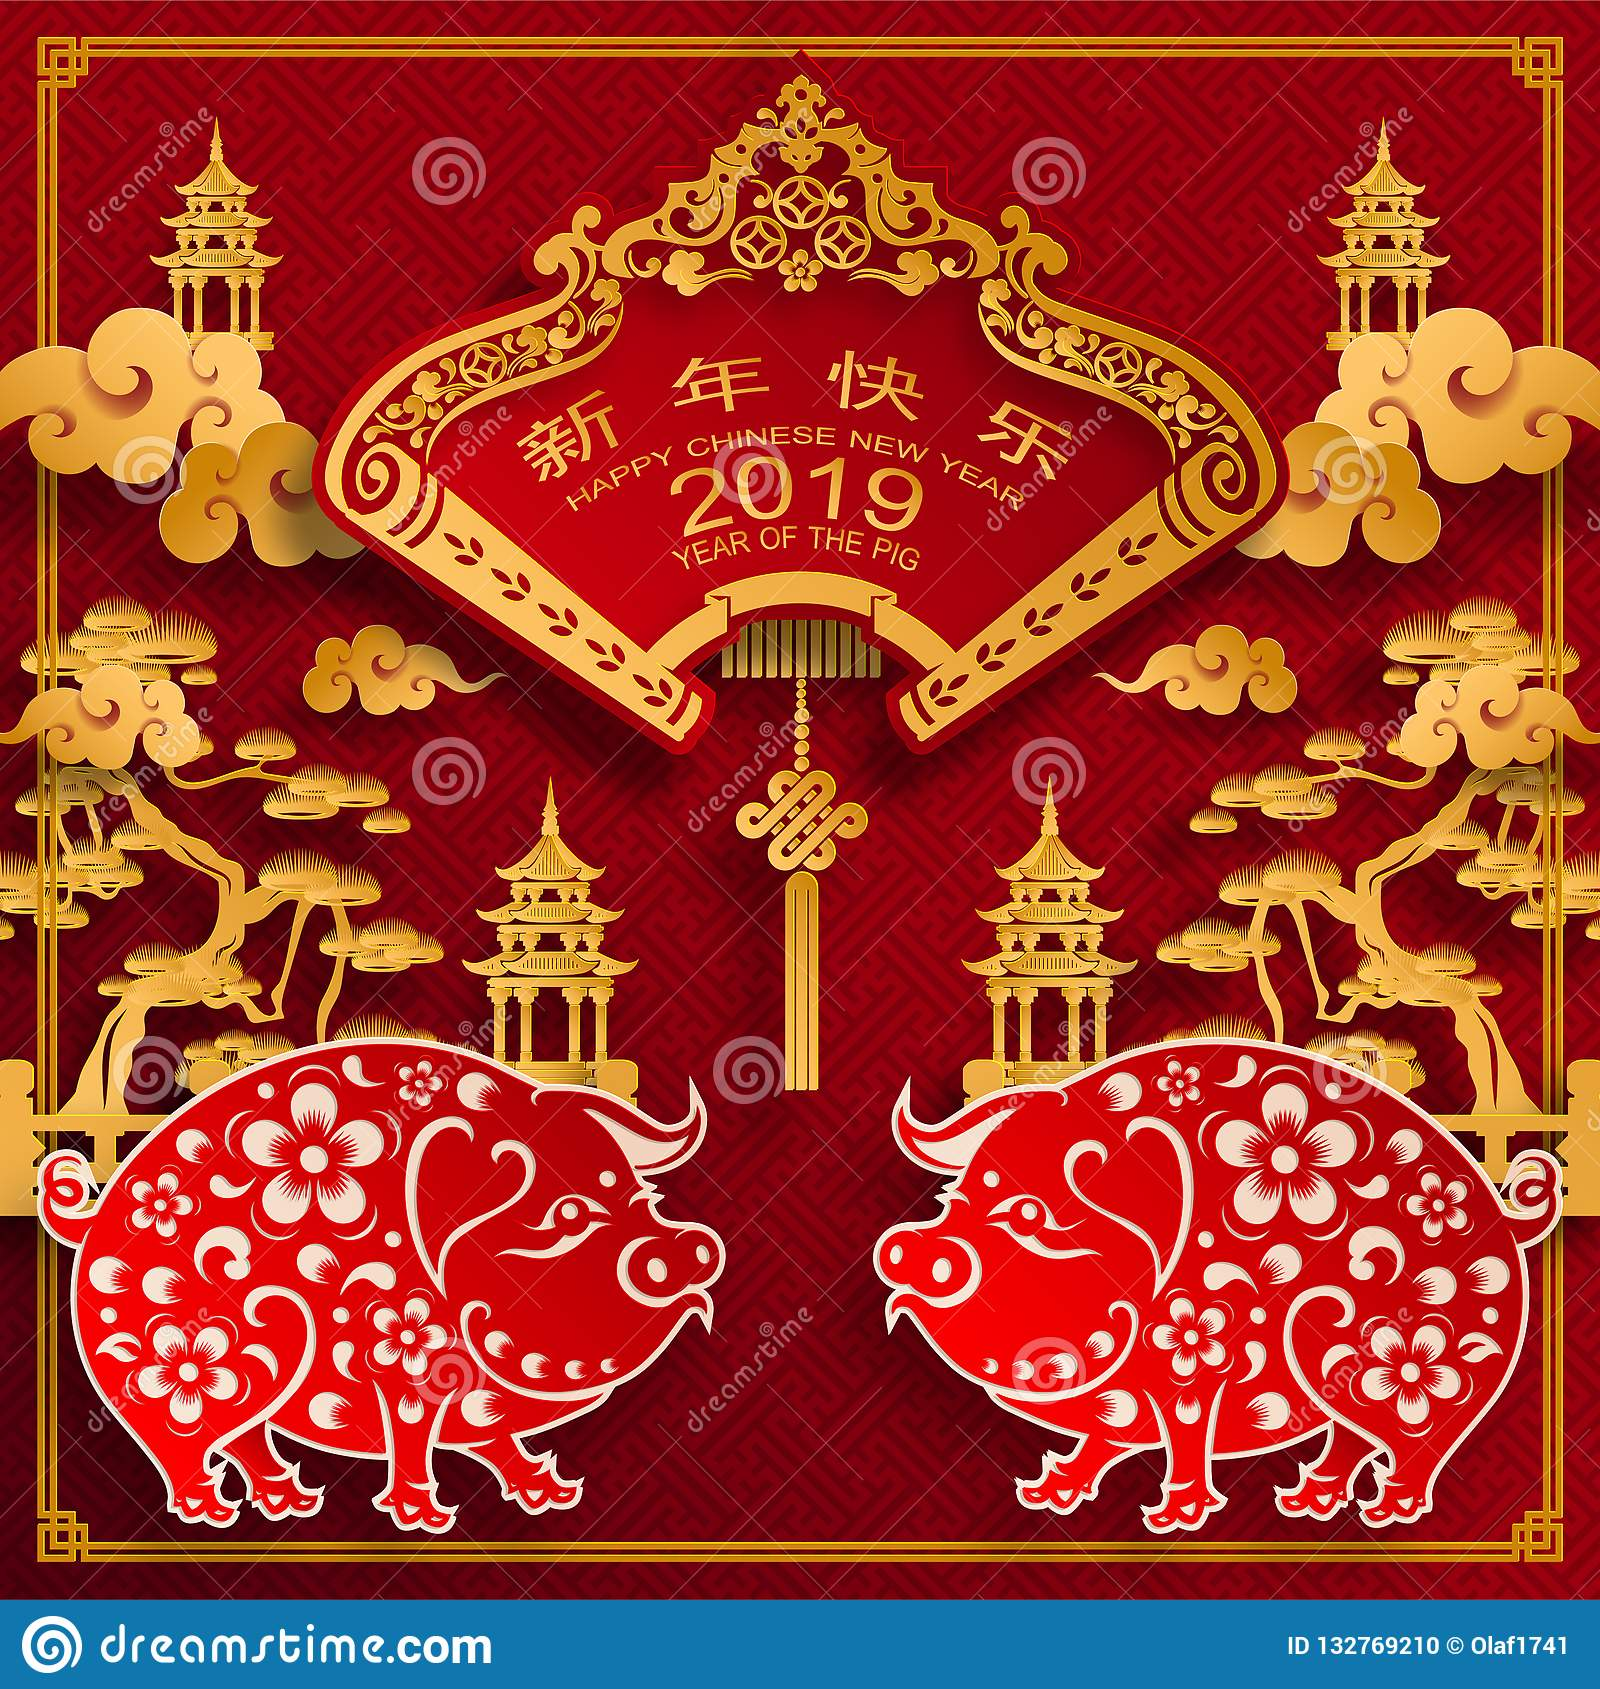 Happy chinese new year 2019 stock vector illustration of - Lucky color for new year 2019 ...